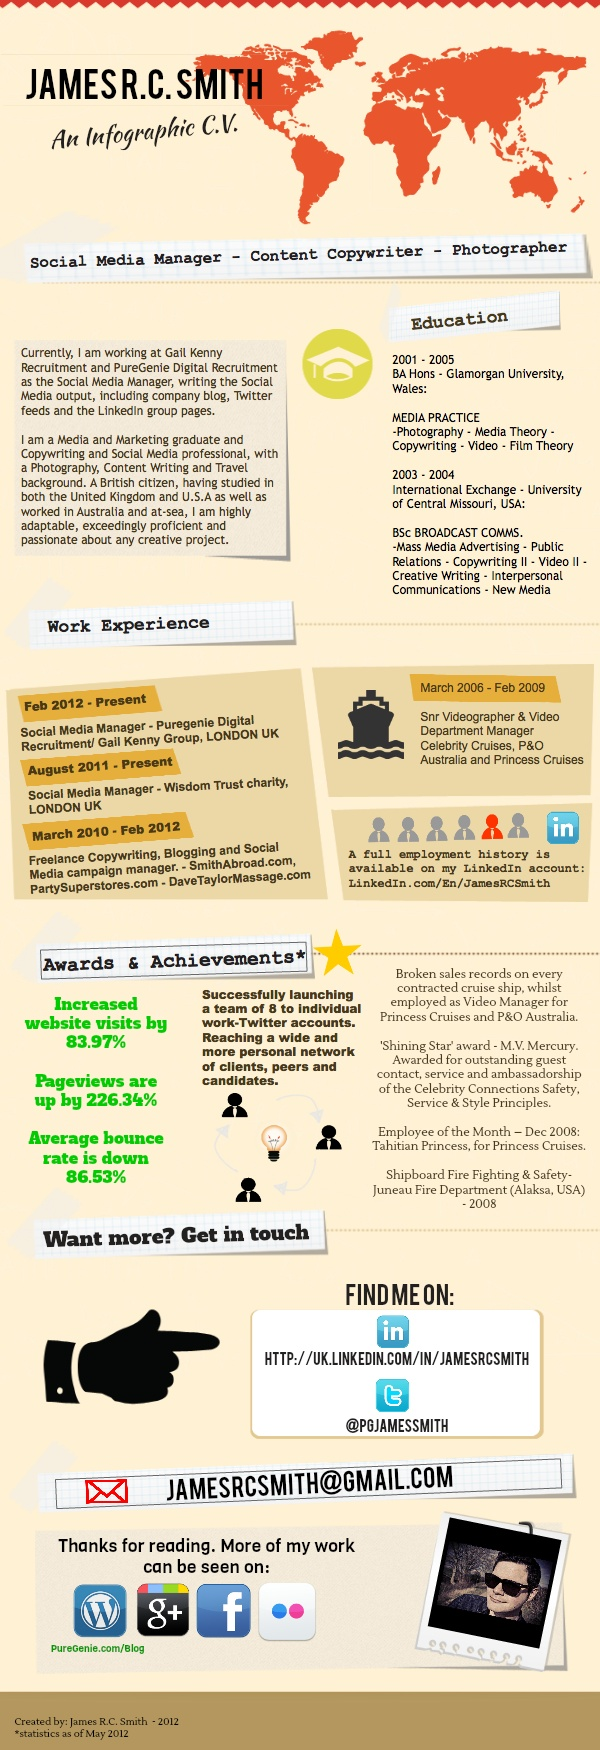 My C.V. / Resume as an infographic - http://smithabroad.files.wordpress.com/2012/05/cvinfographic.png